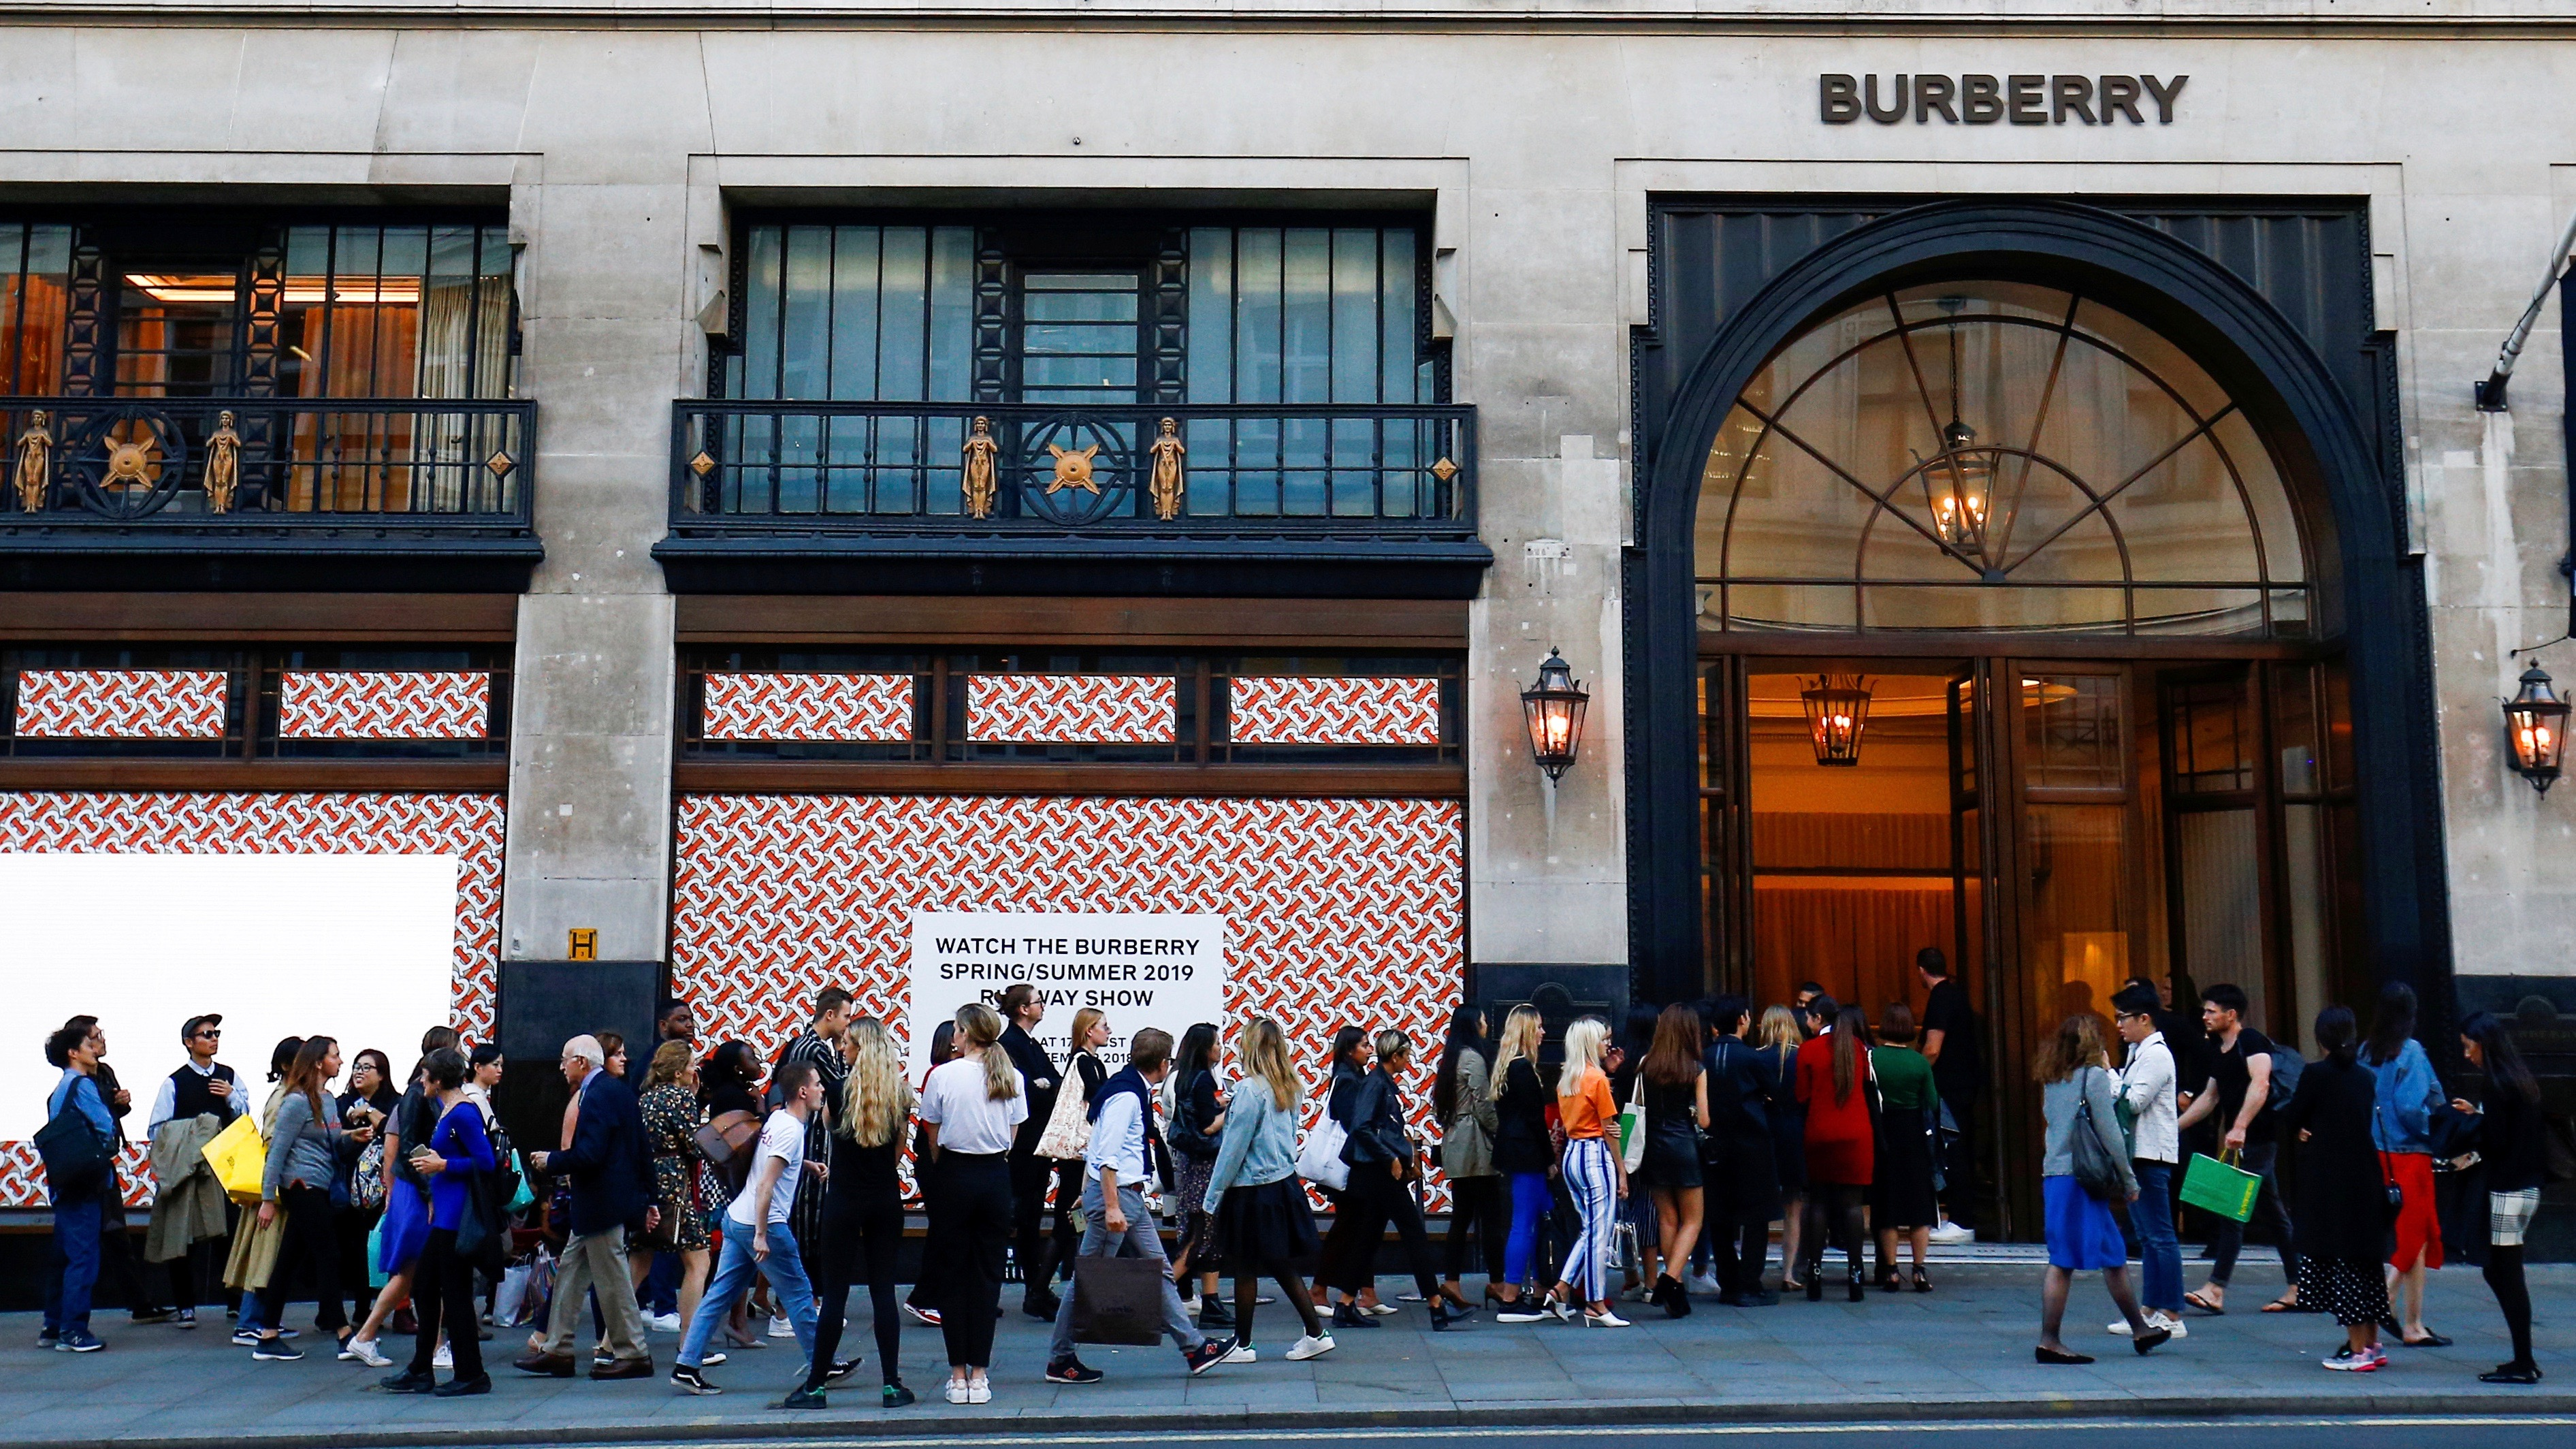 Burberry store, London.